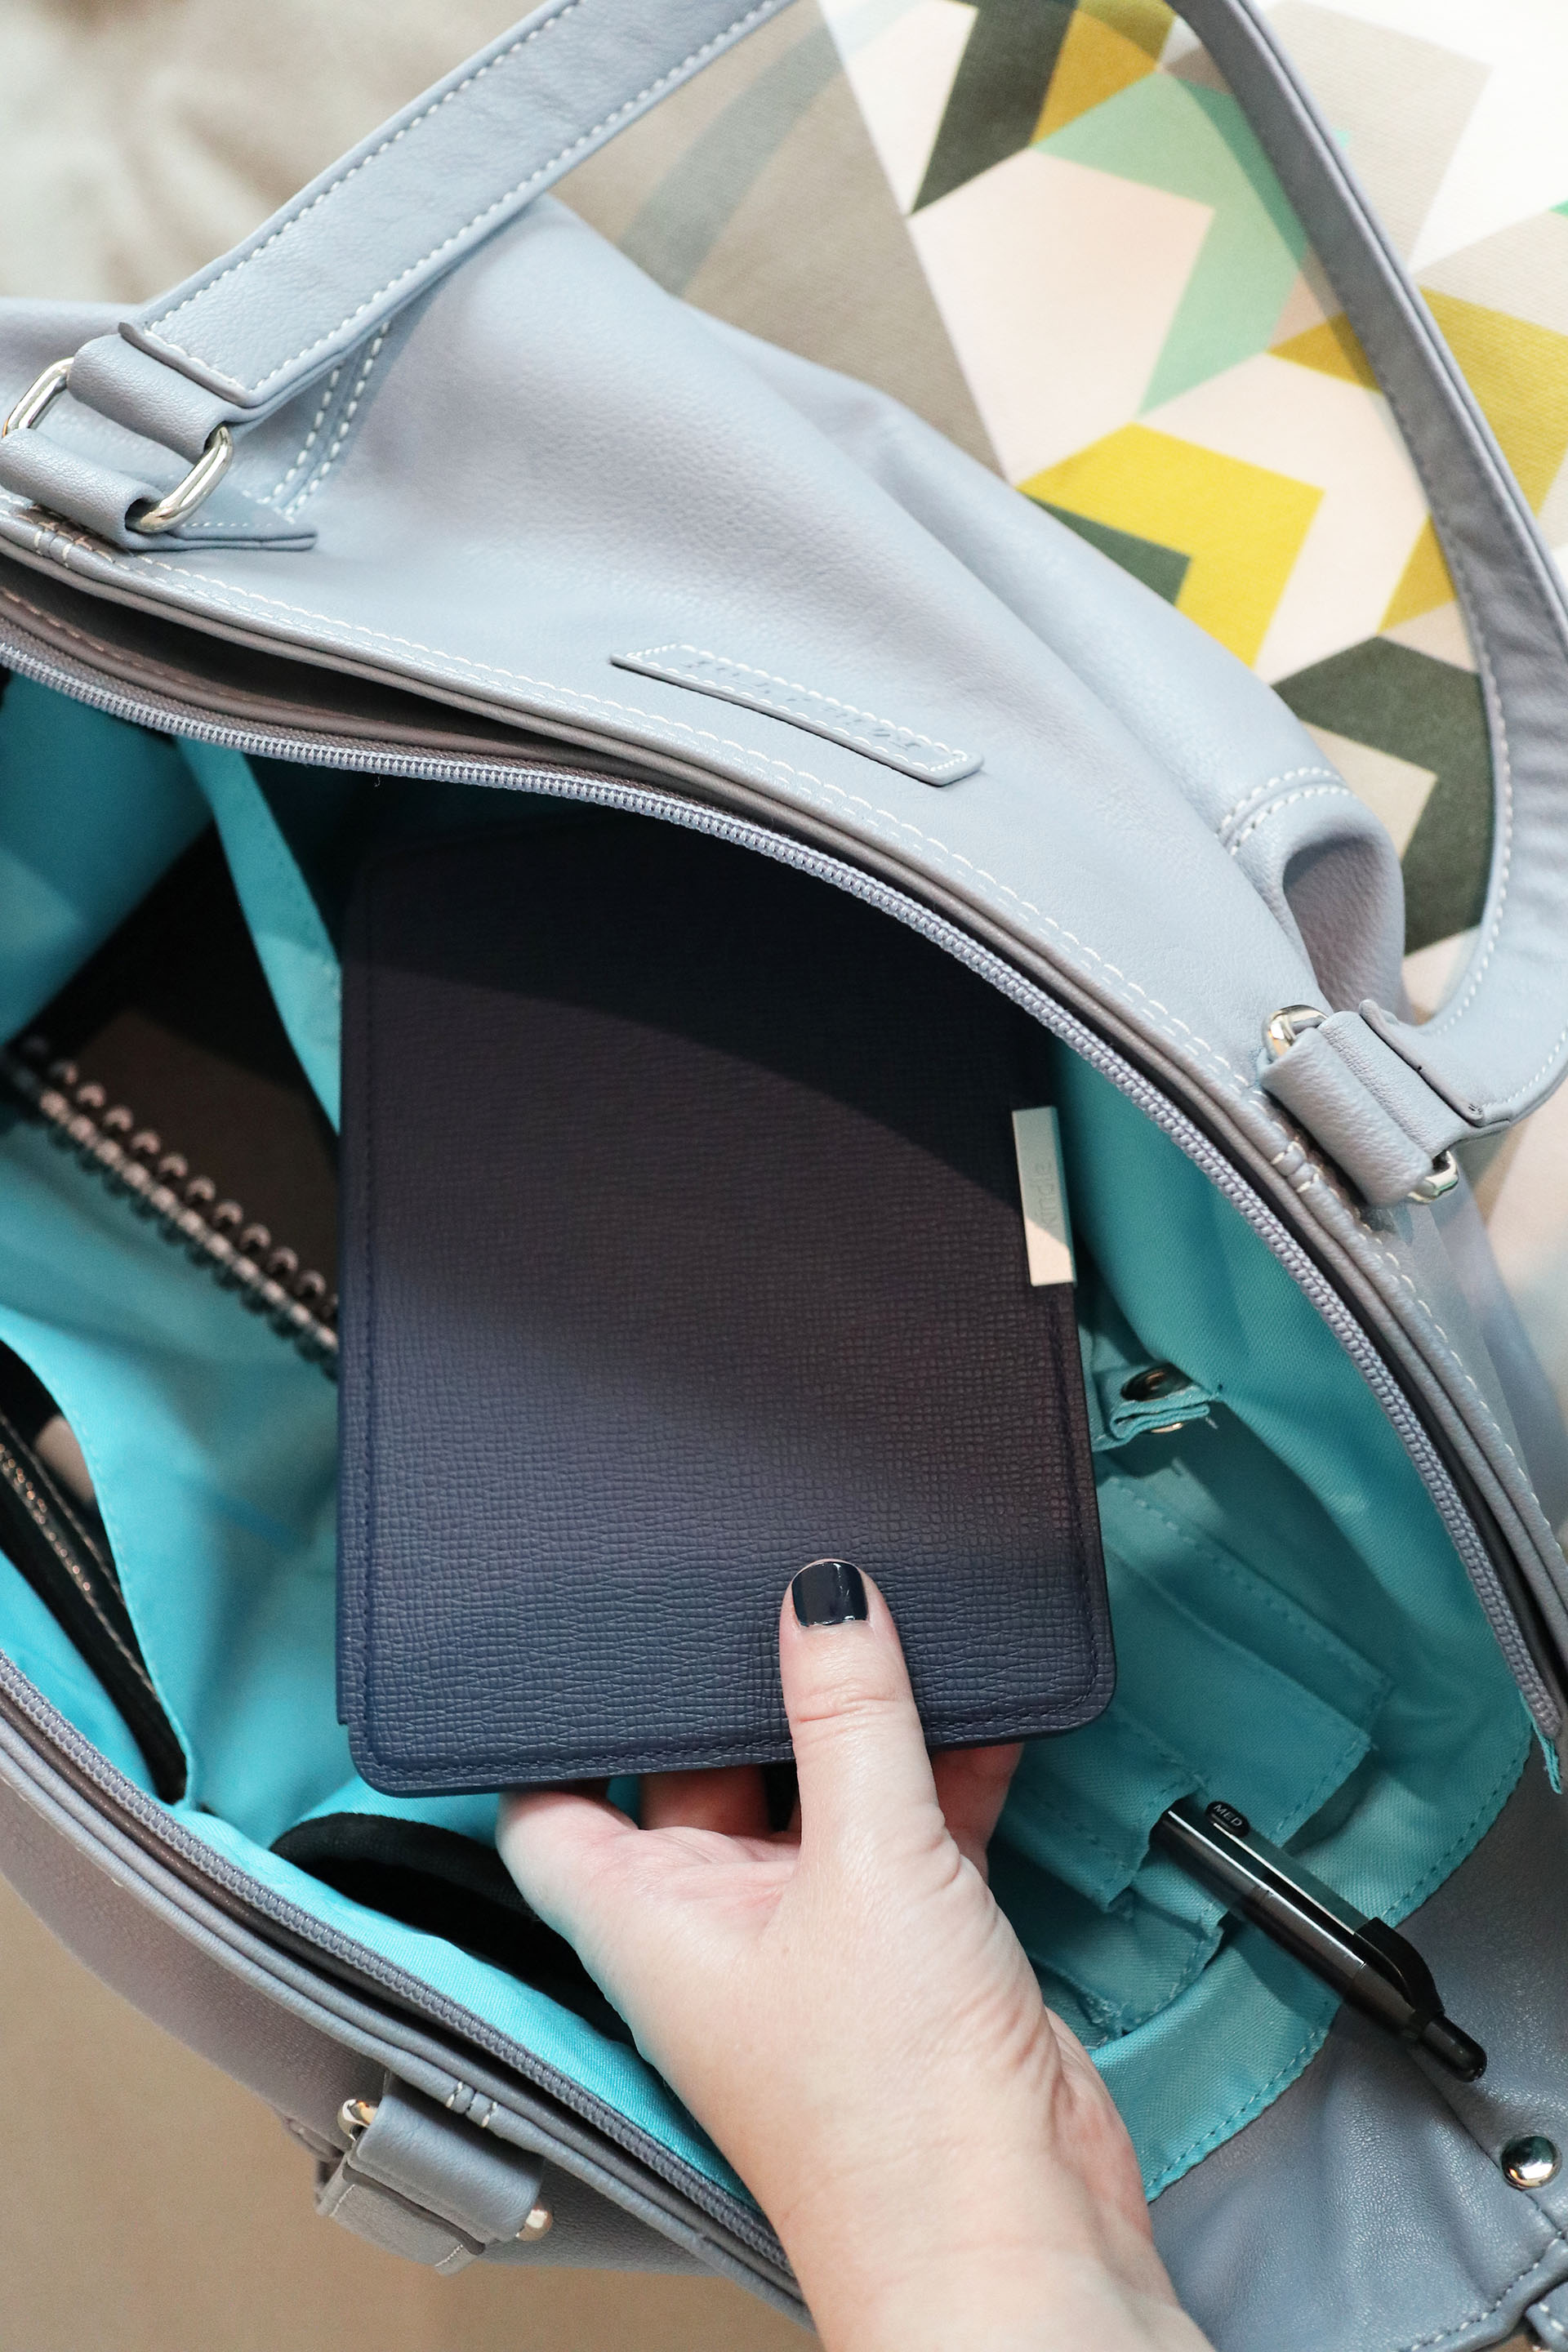 Taking my Kindle Paperwhite out of the Mia Tui Jennie